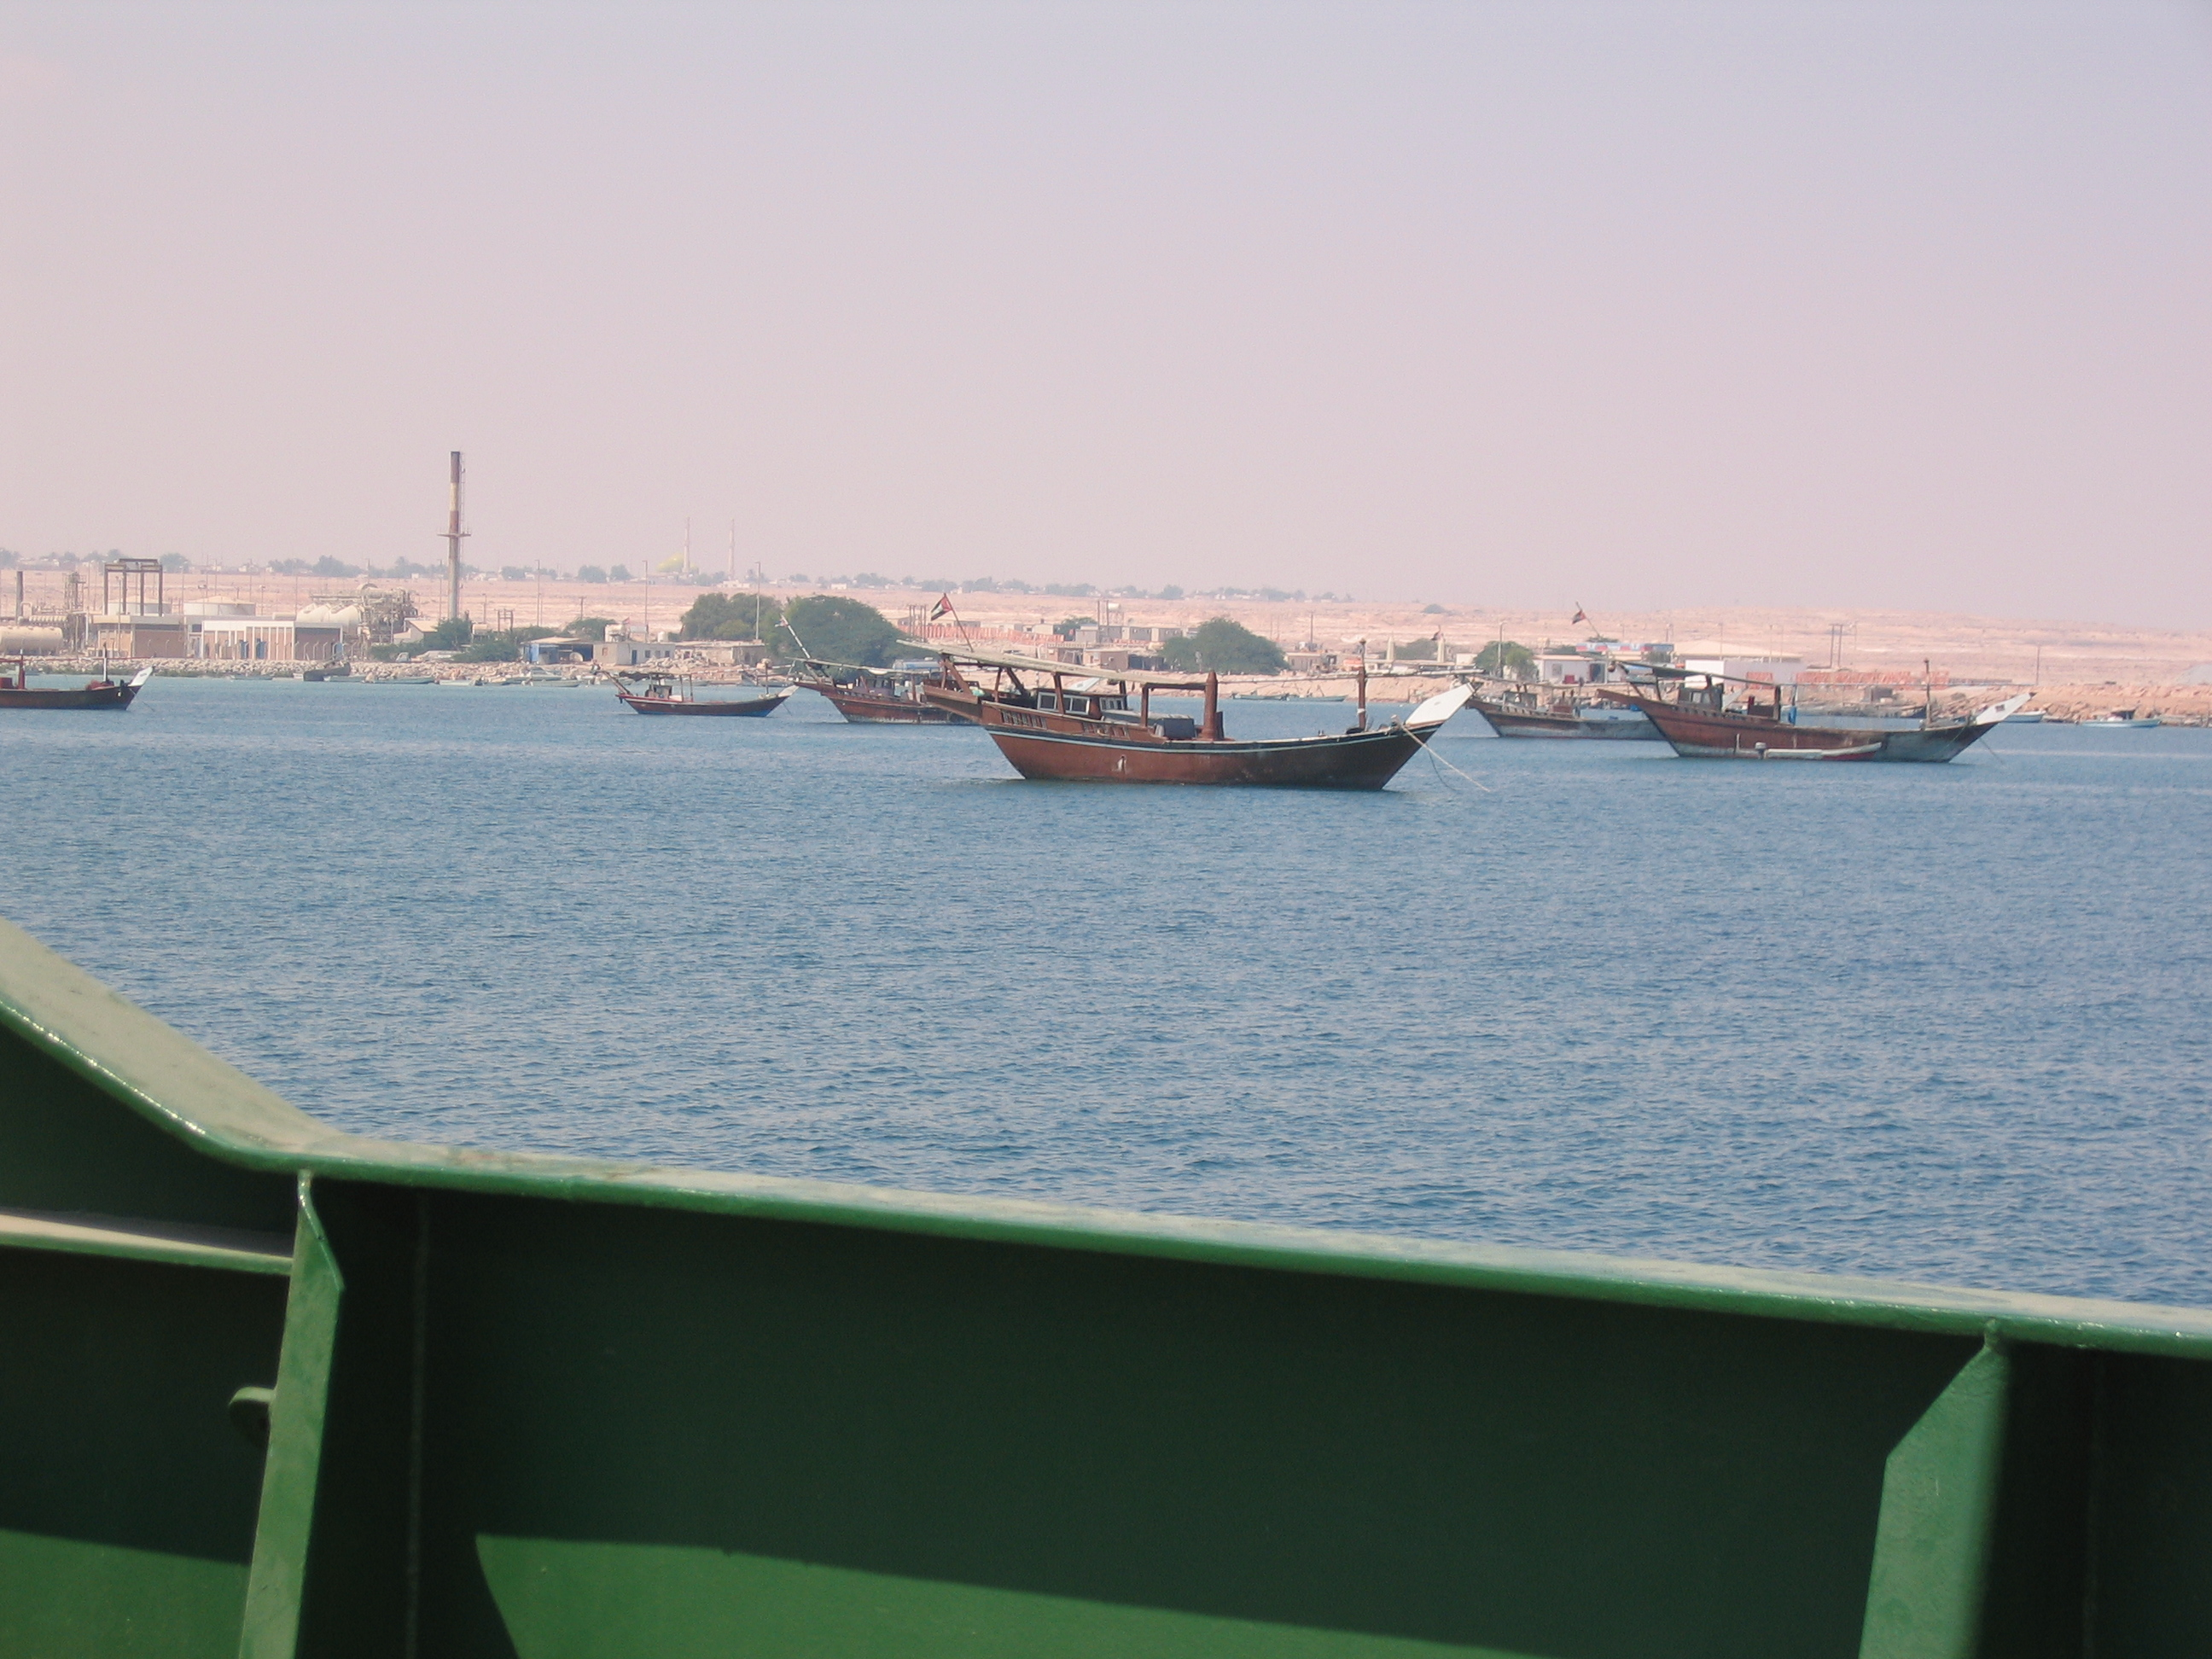 siteseeing 001.jpg - Traditional Arabic boats.